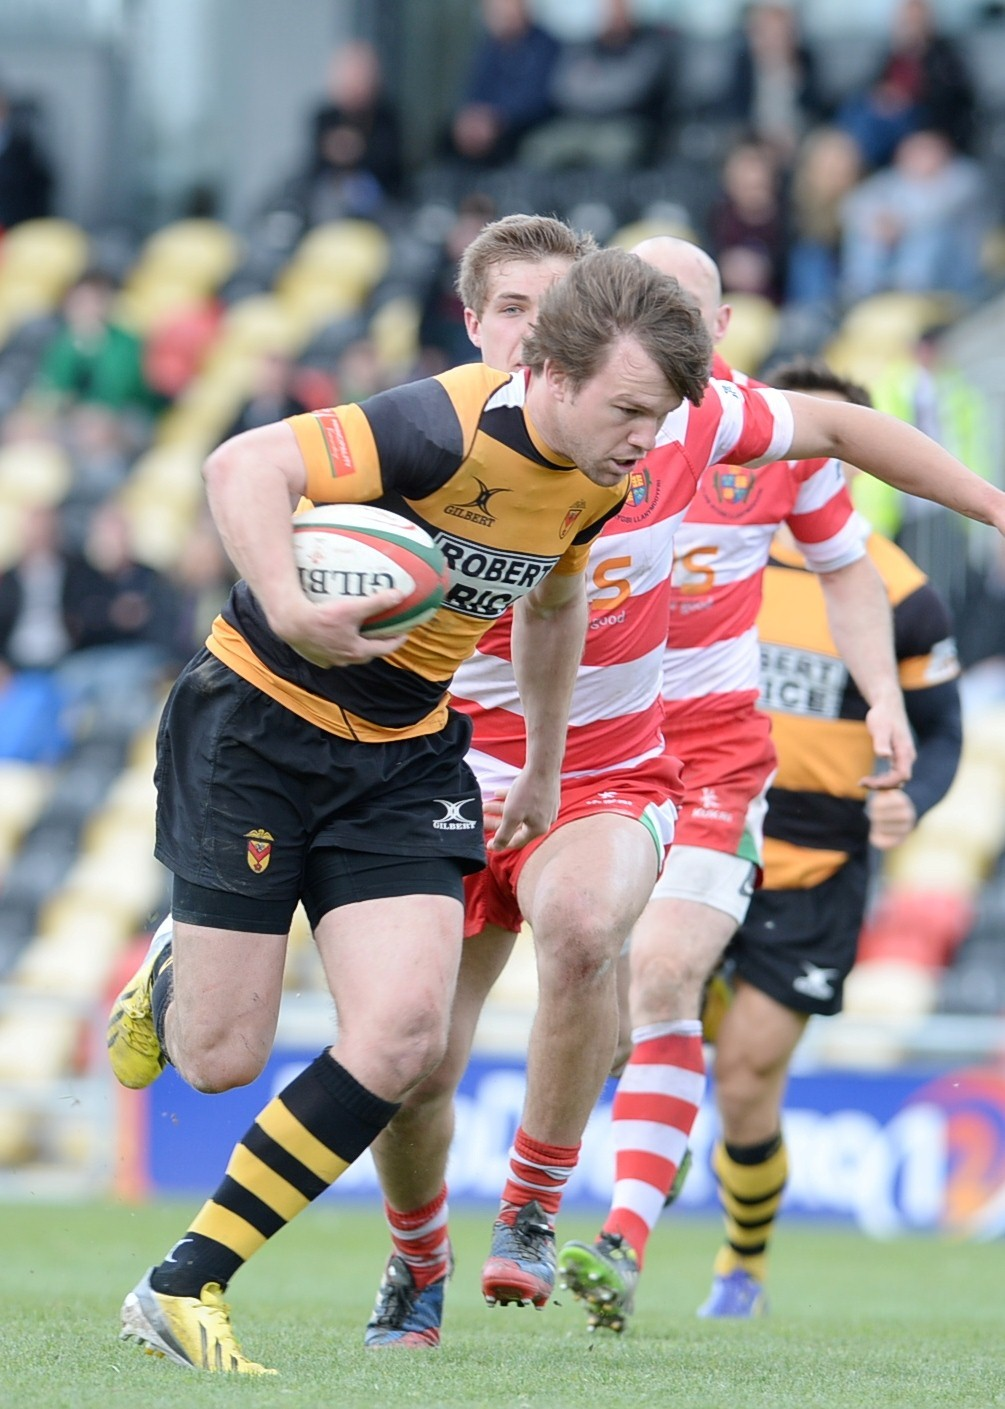 FINE GAME: Newport man of the match Geraint O'Driscoll in action against Llandovery